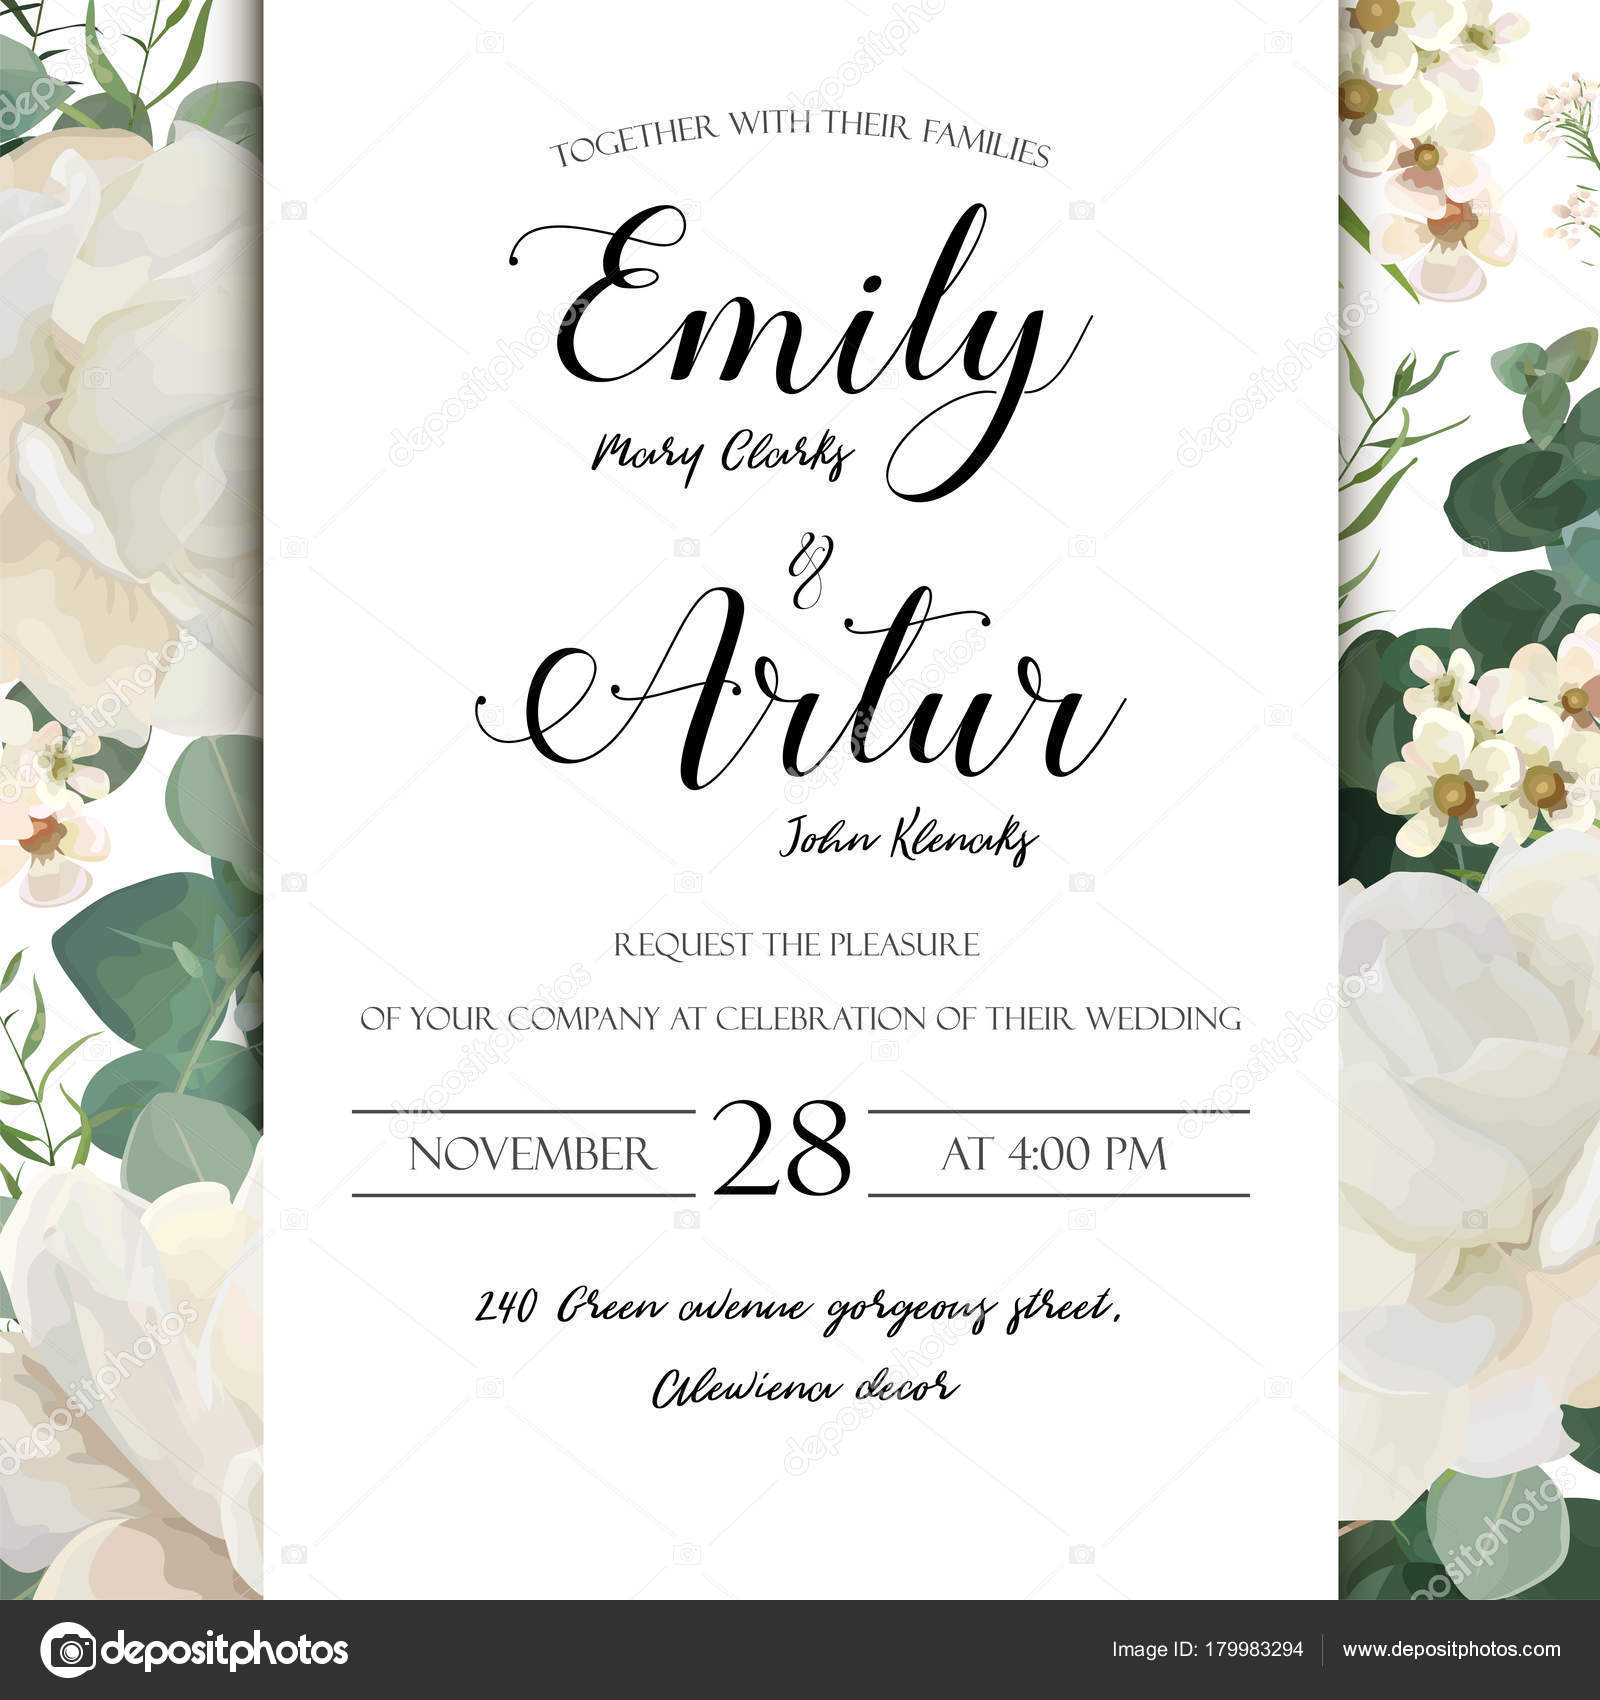 floral wedding invitation save the date card elegant invite card